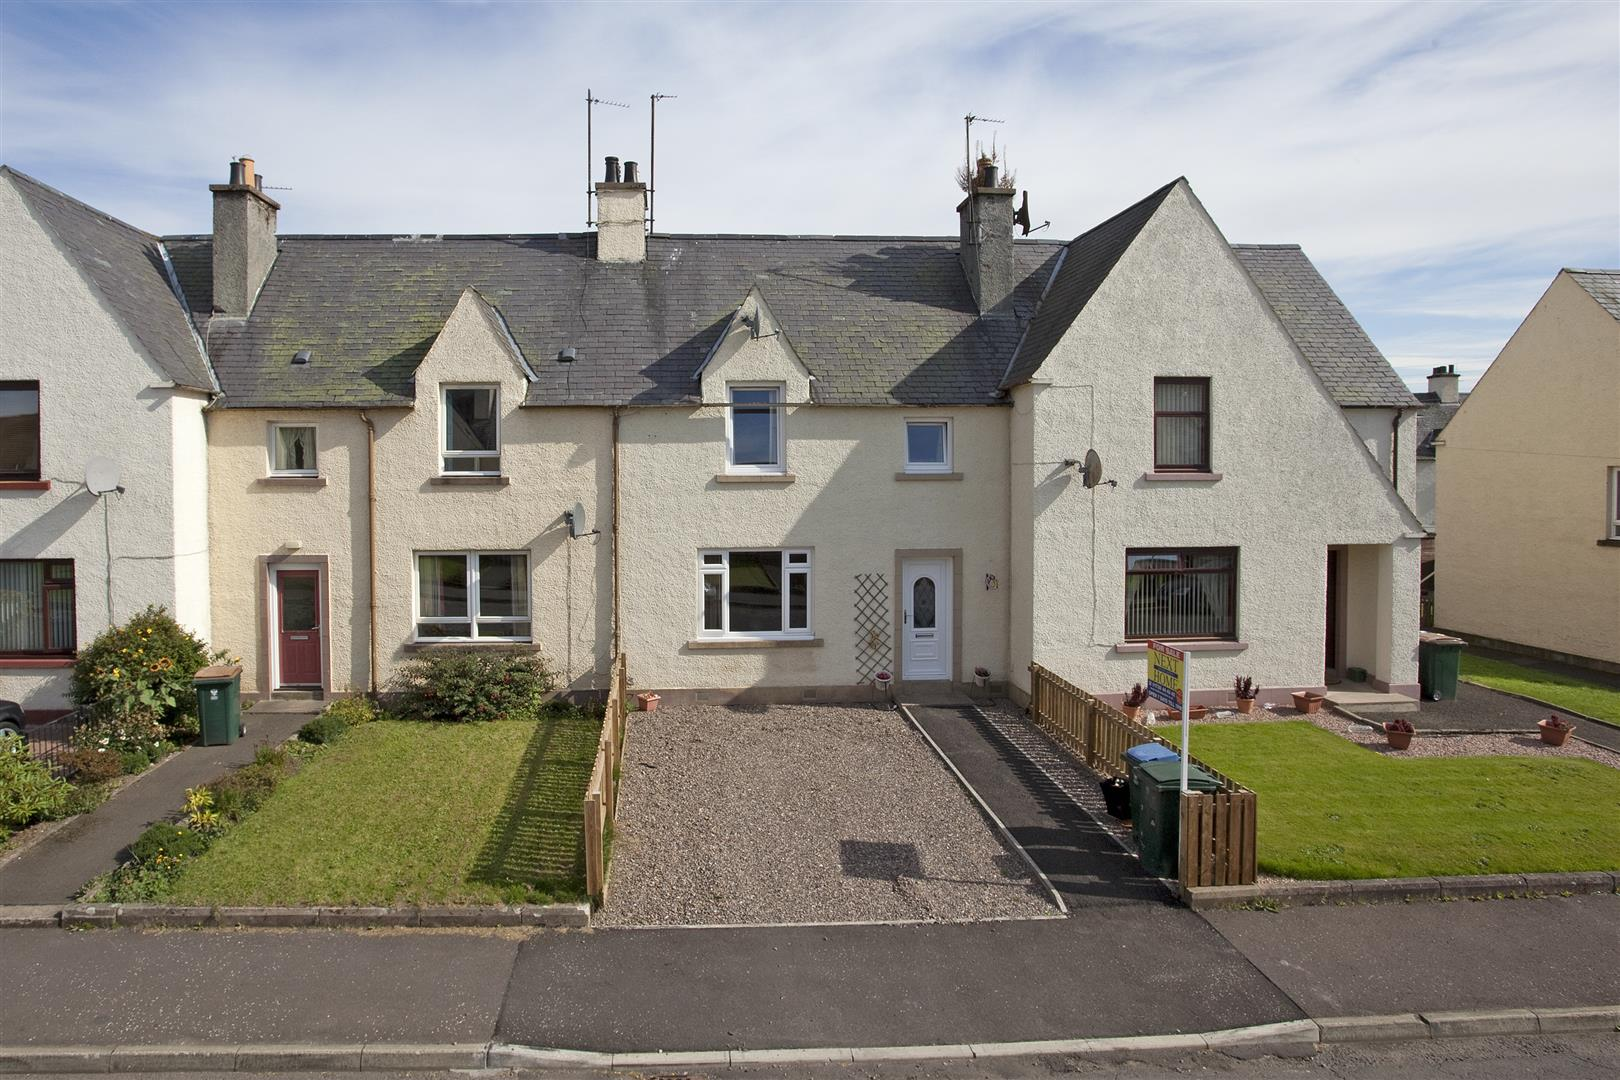 16, Morrison Terrace, Alyth, Perthshire, PH11 8BY, UK